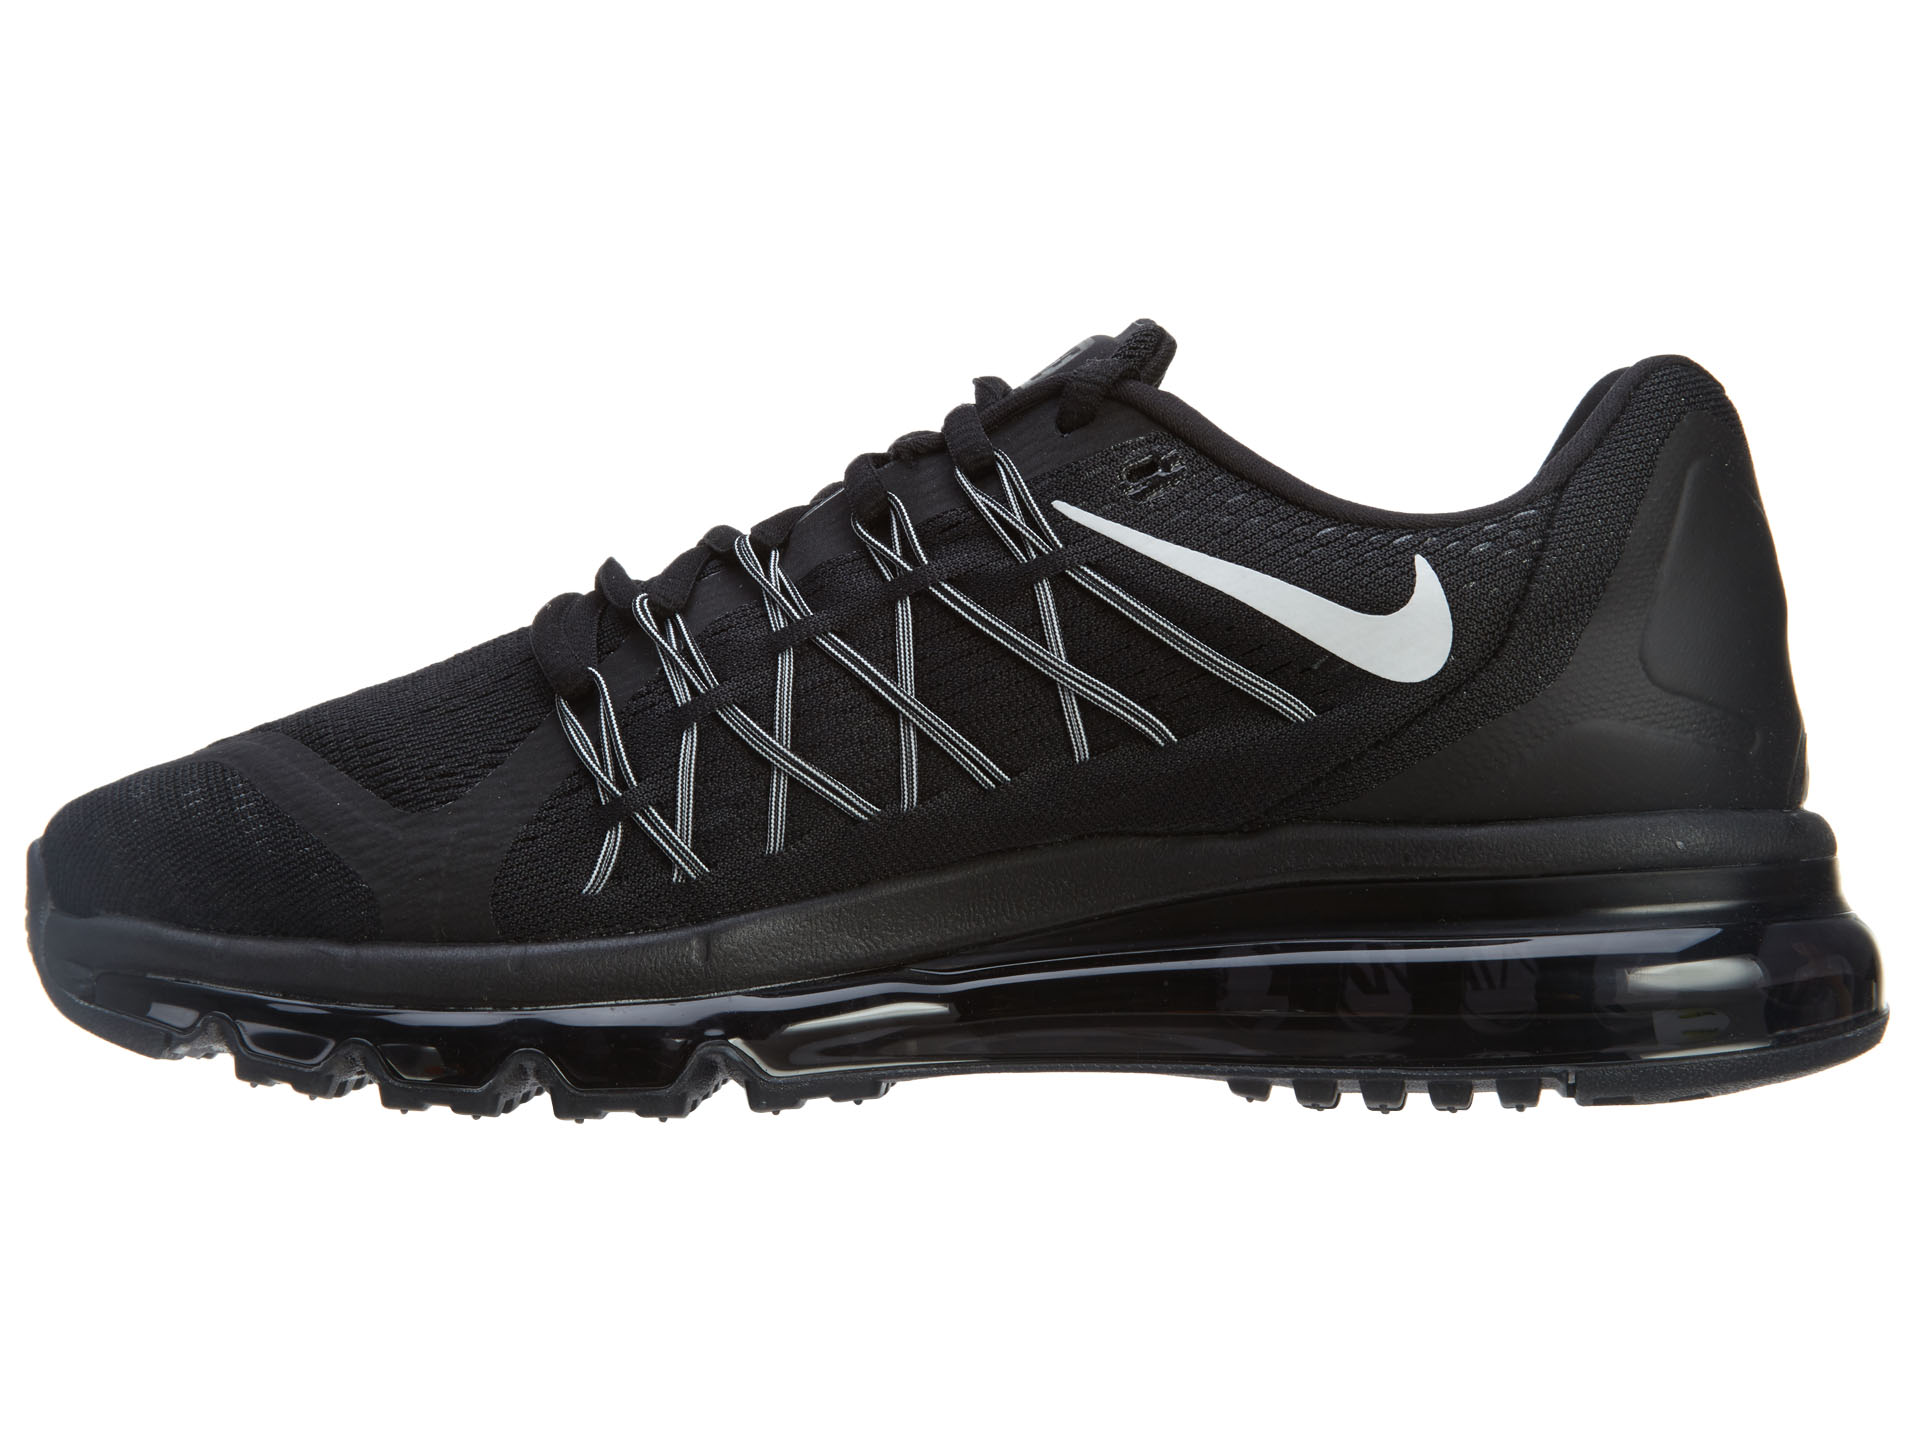 Nike Nike Air Max 2015 Mens Running Shoes BlackWhite